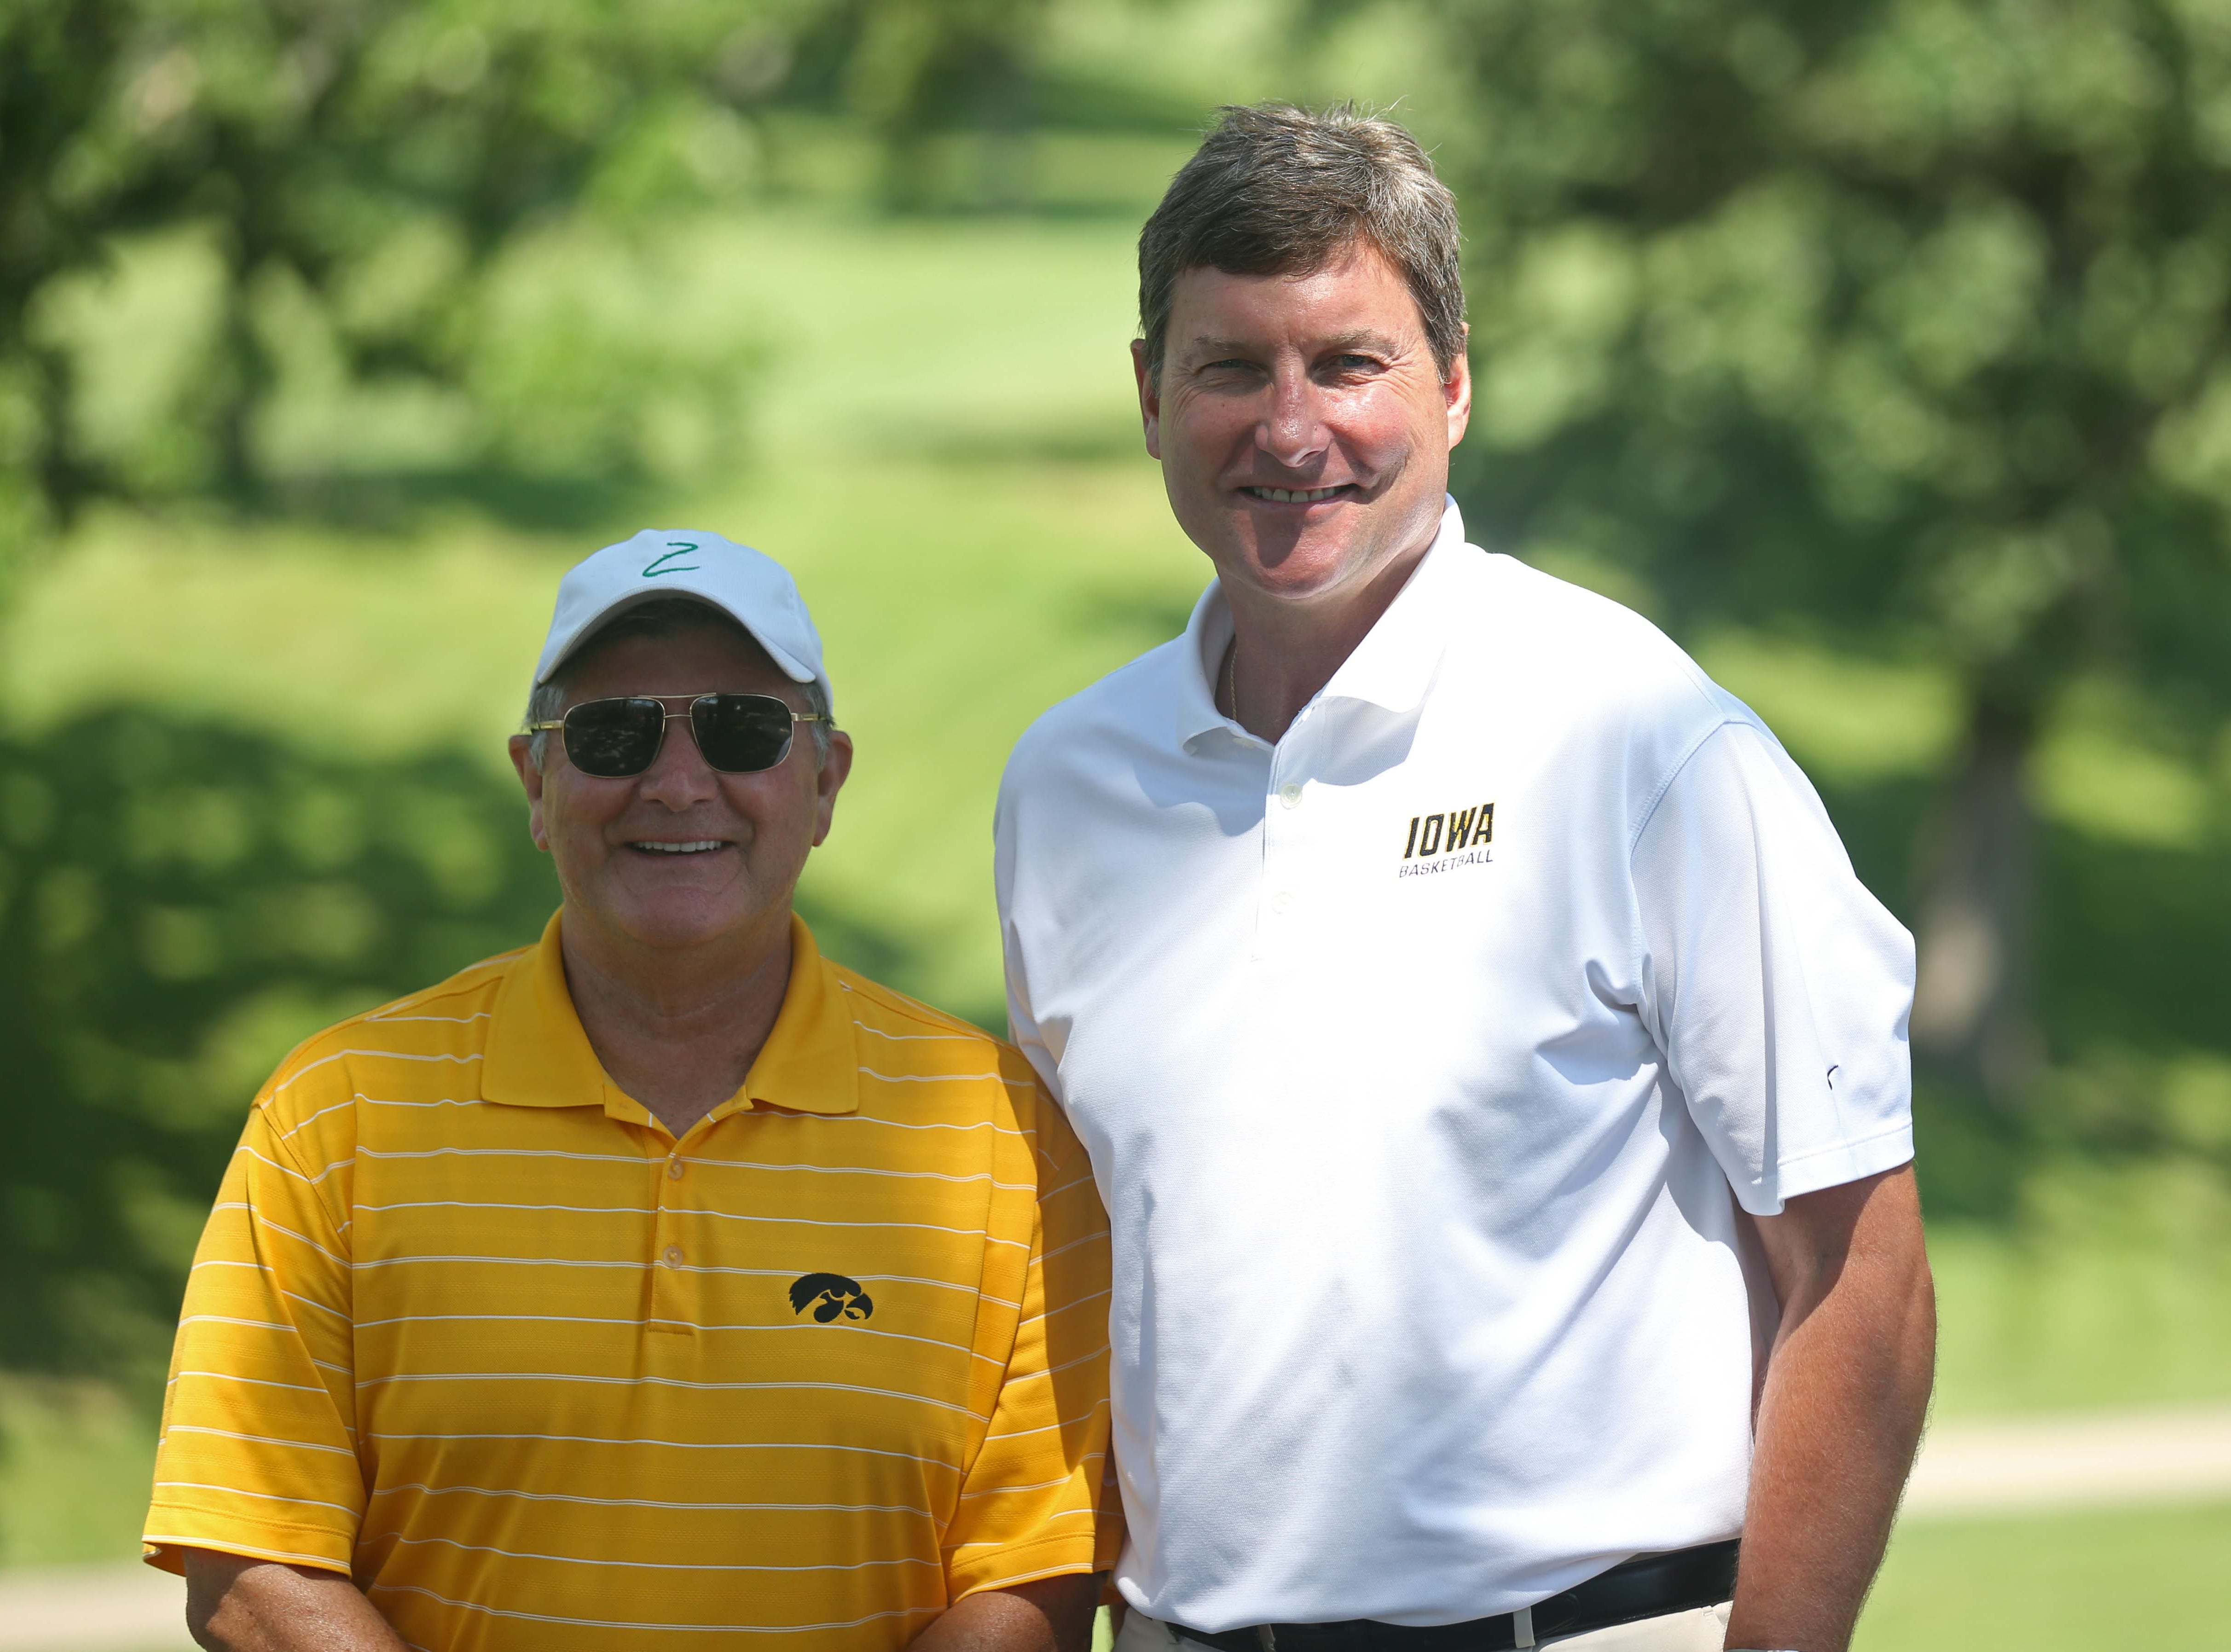 Gary Dolphin and Bobby Hansen, radio announcers for the University of Iowa basketball team pose for a photo during the annual Polk County I-Club golf fundraiser at Wakonda Club in Des Moines on Monday, June 13, 2015.